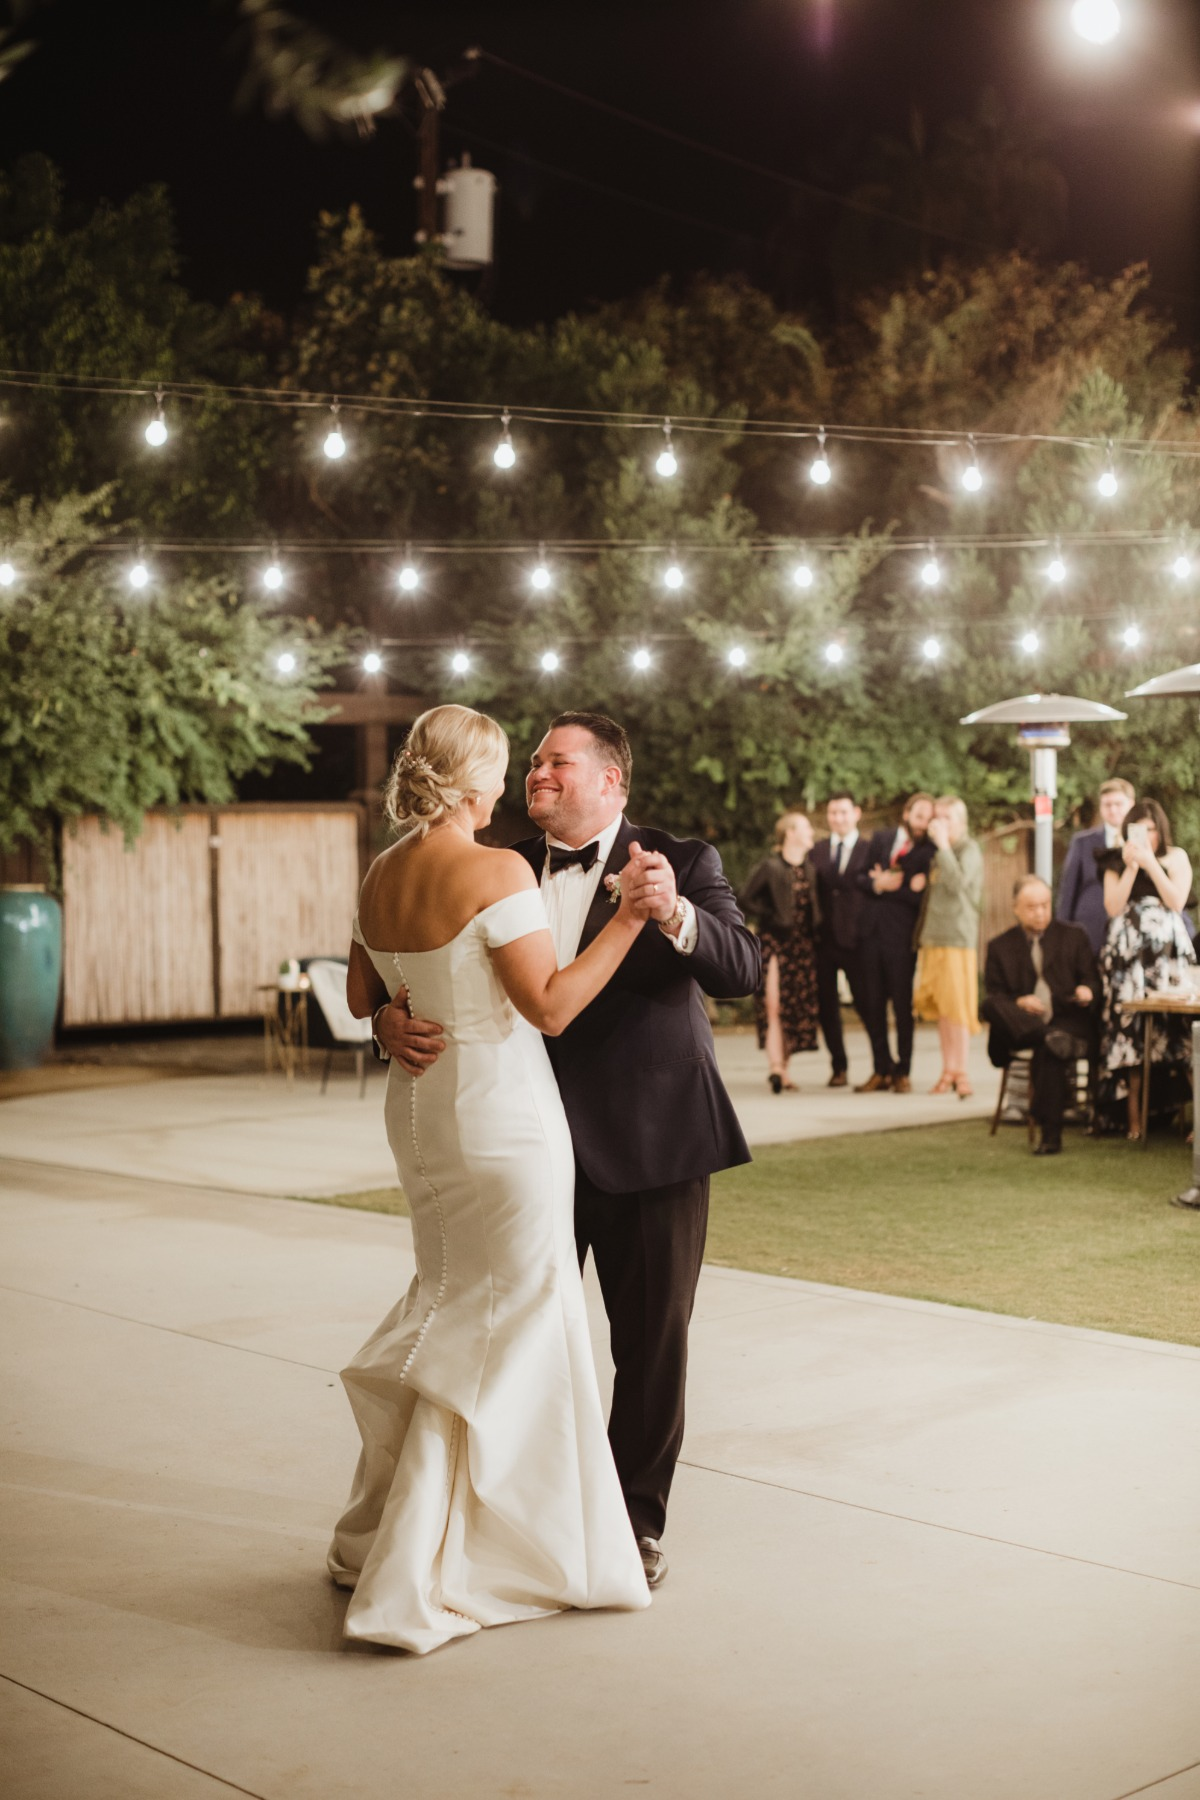 Cute first dance